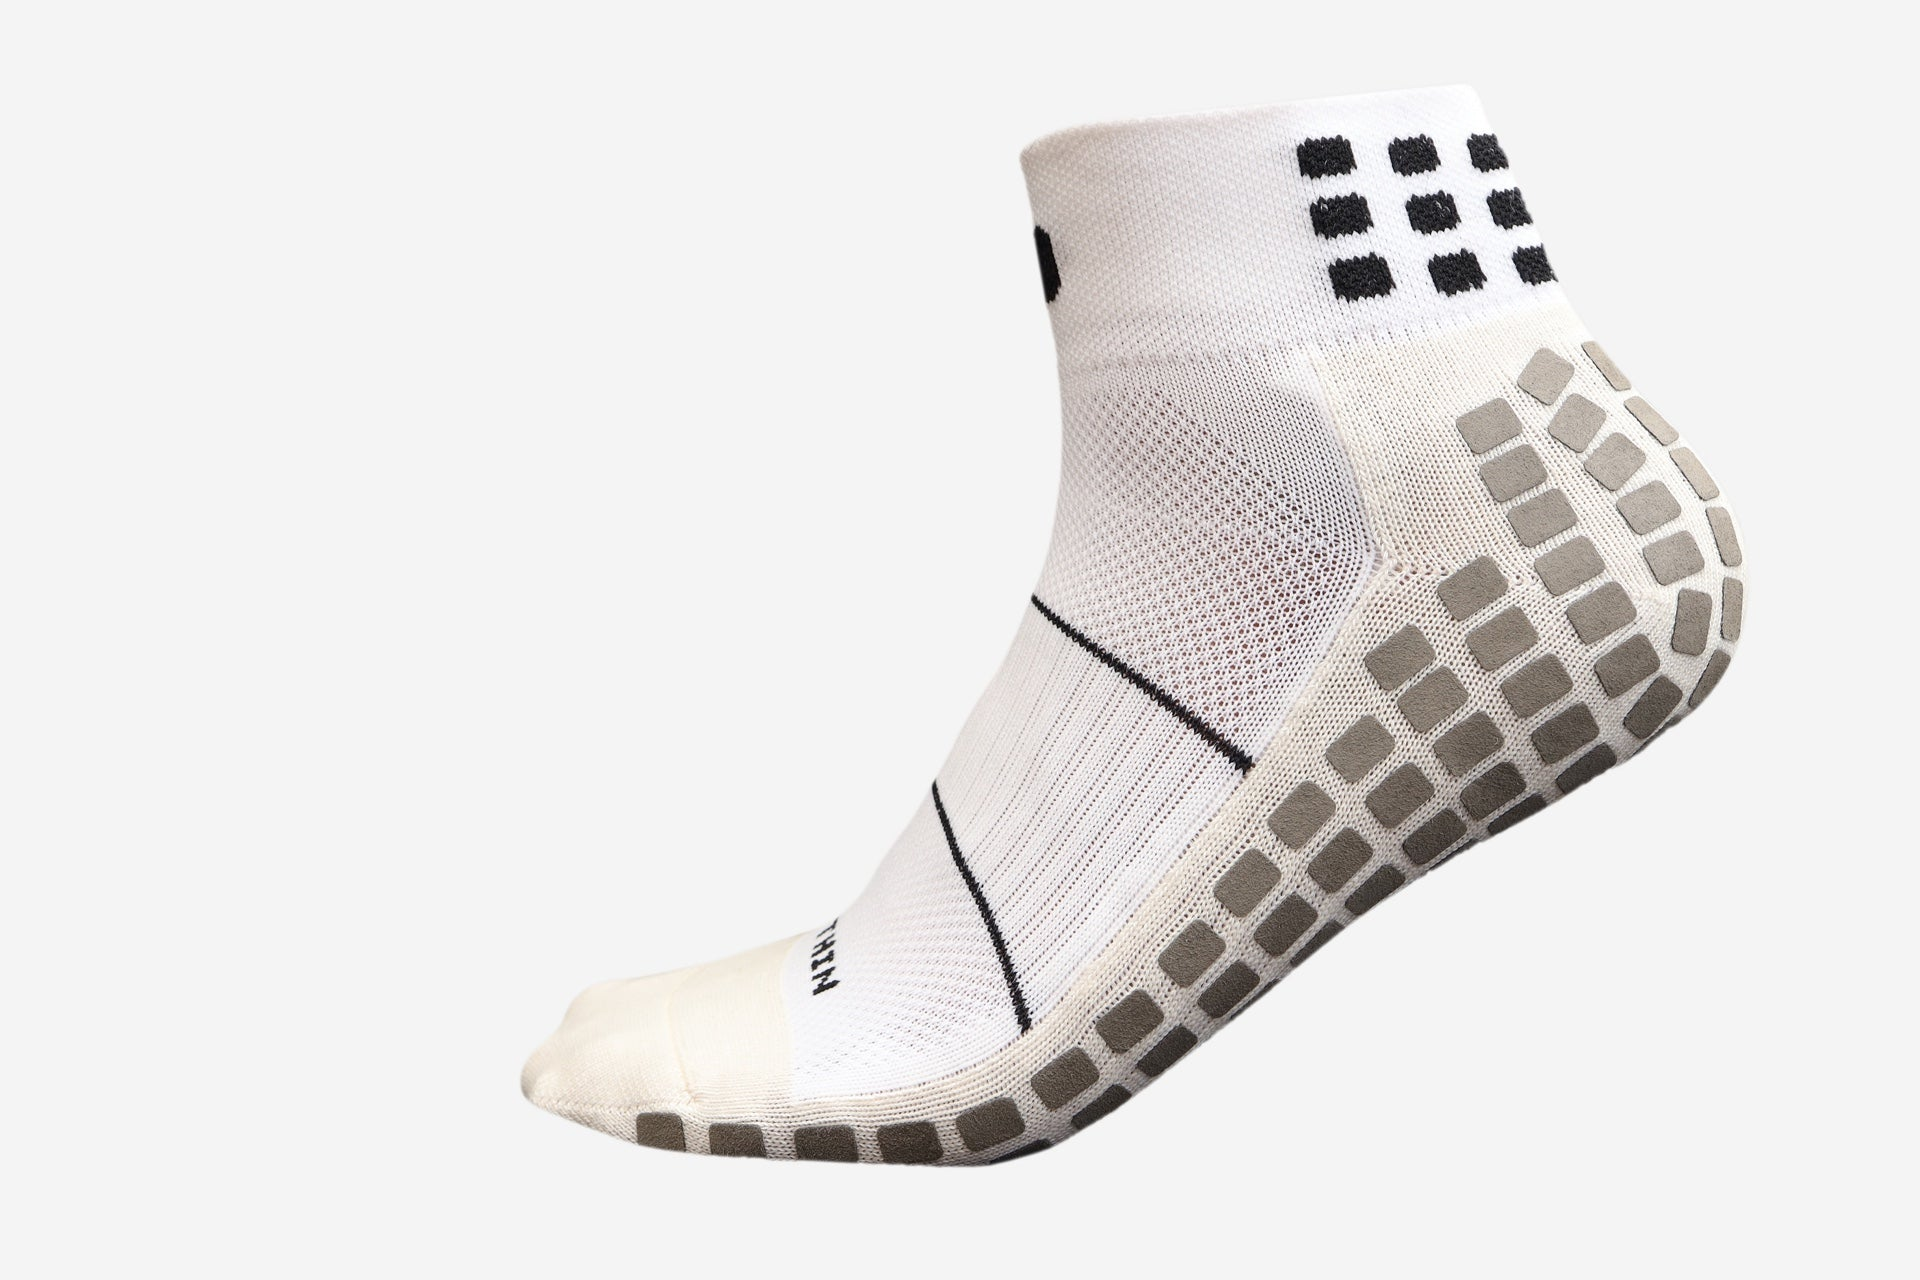 TRUsox® 2.0 Ankle Length